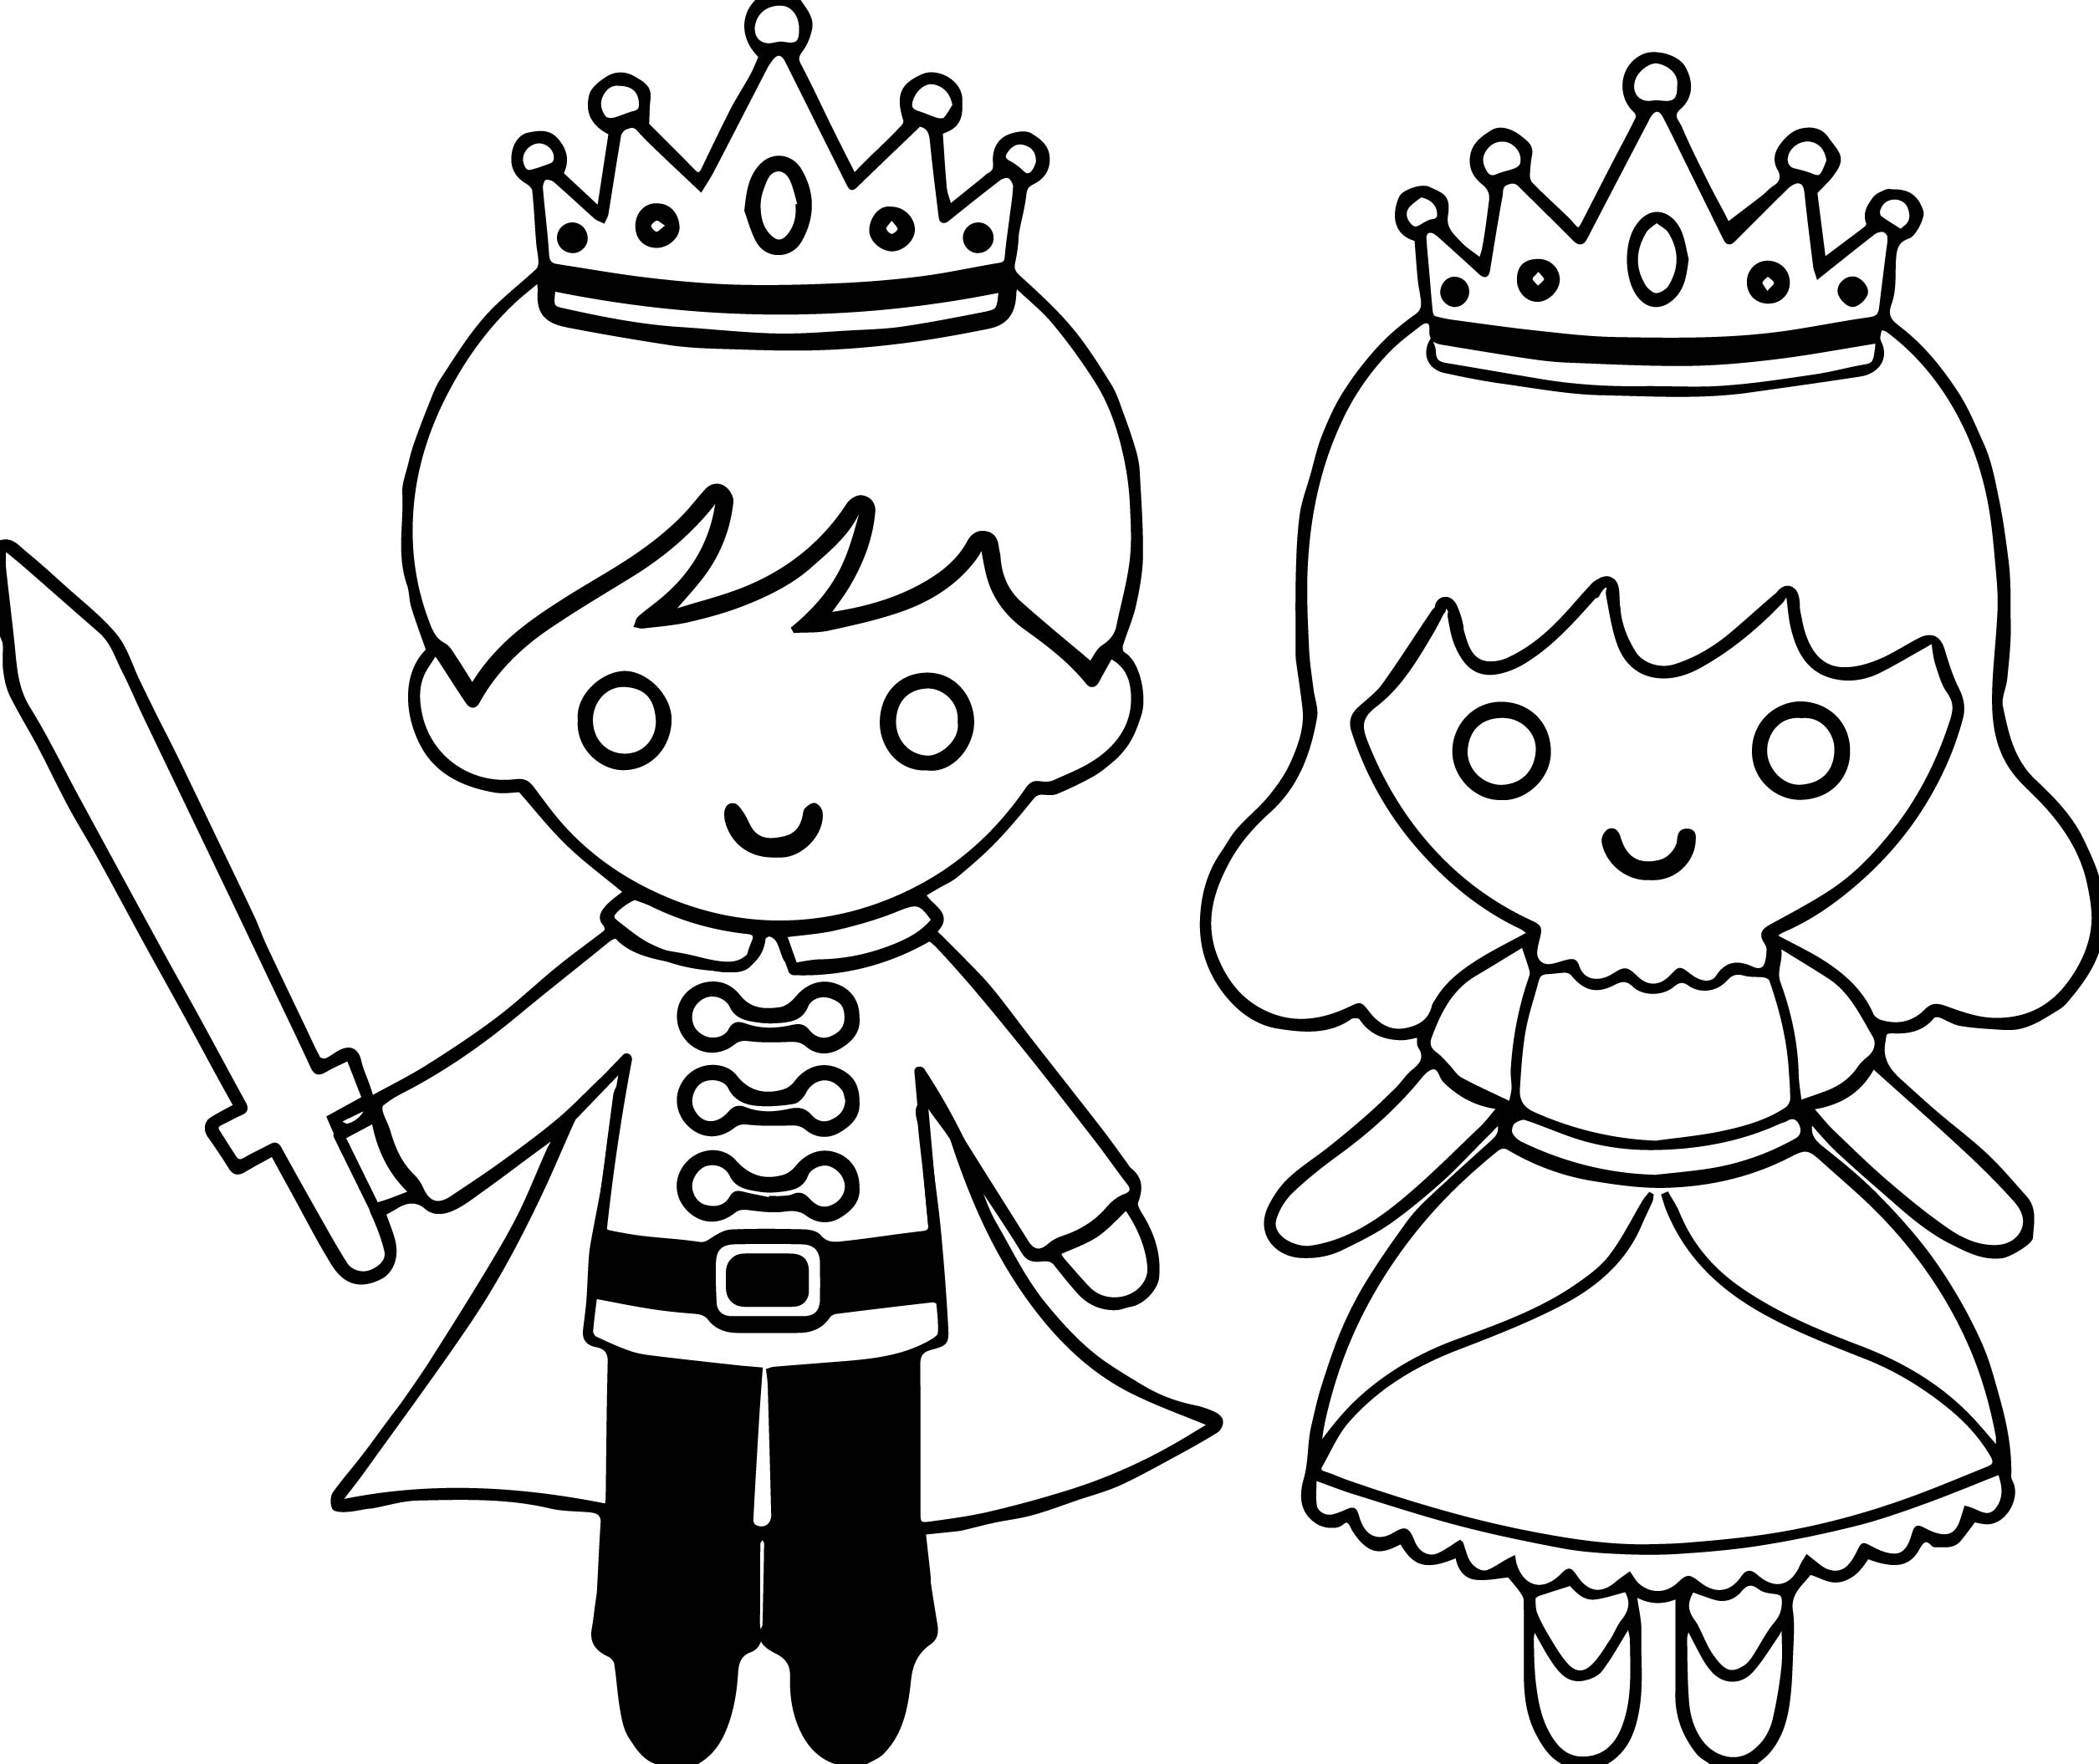 Colouring Pages Princesses To Print : Prince princess warrior coloring page wecoloringpage